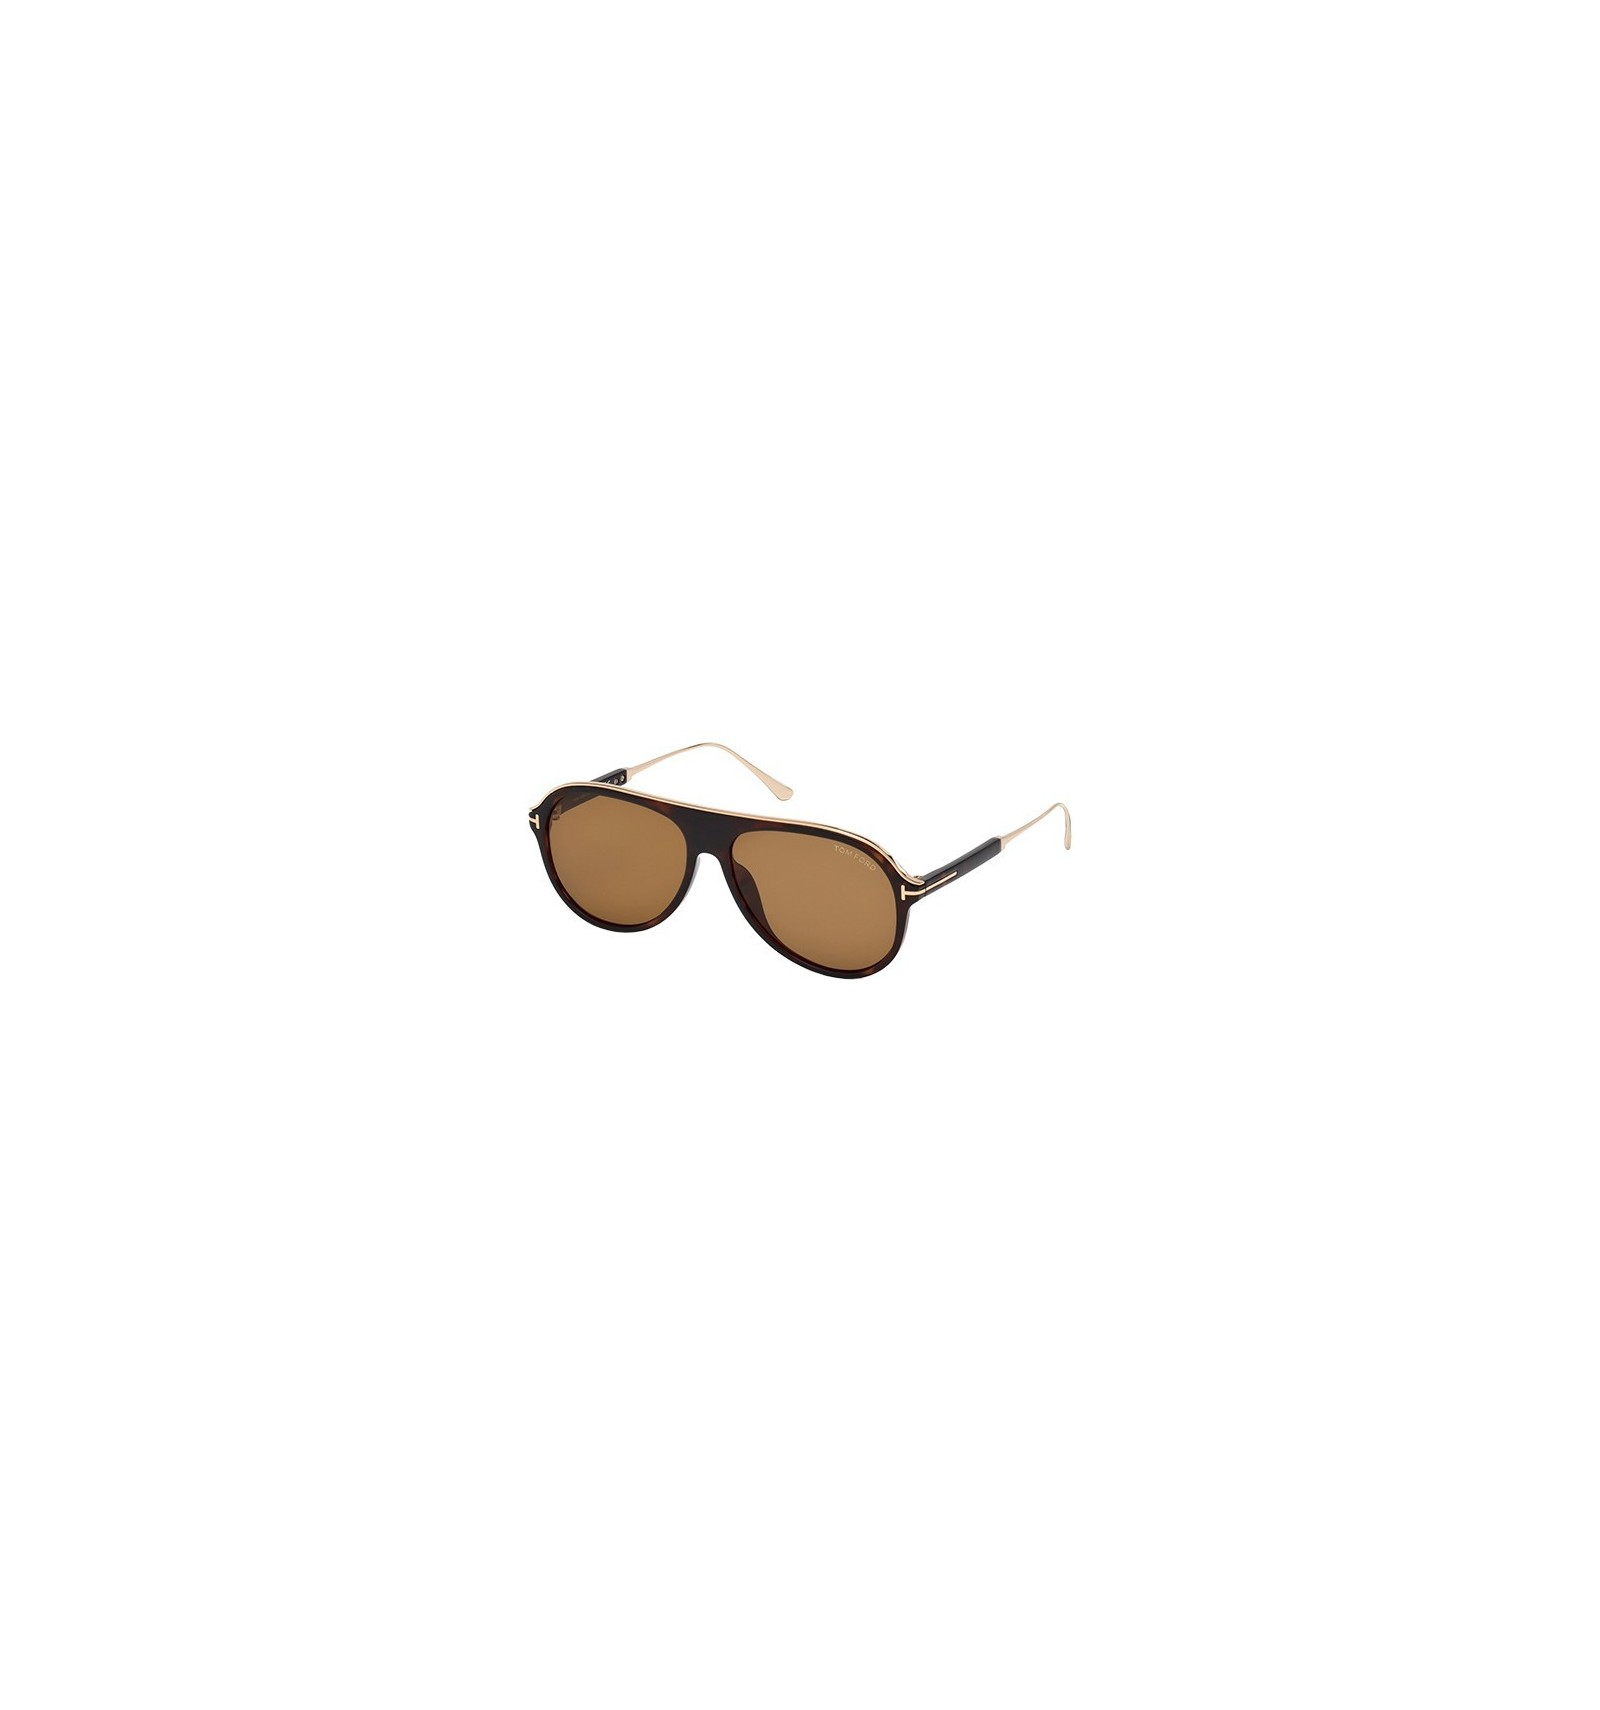 34a4df3369 Gafas de Sol Tom Ford FT0624 NICHOLAI Dark Havana - Light Brown (52E)